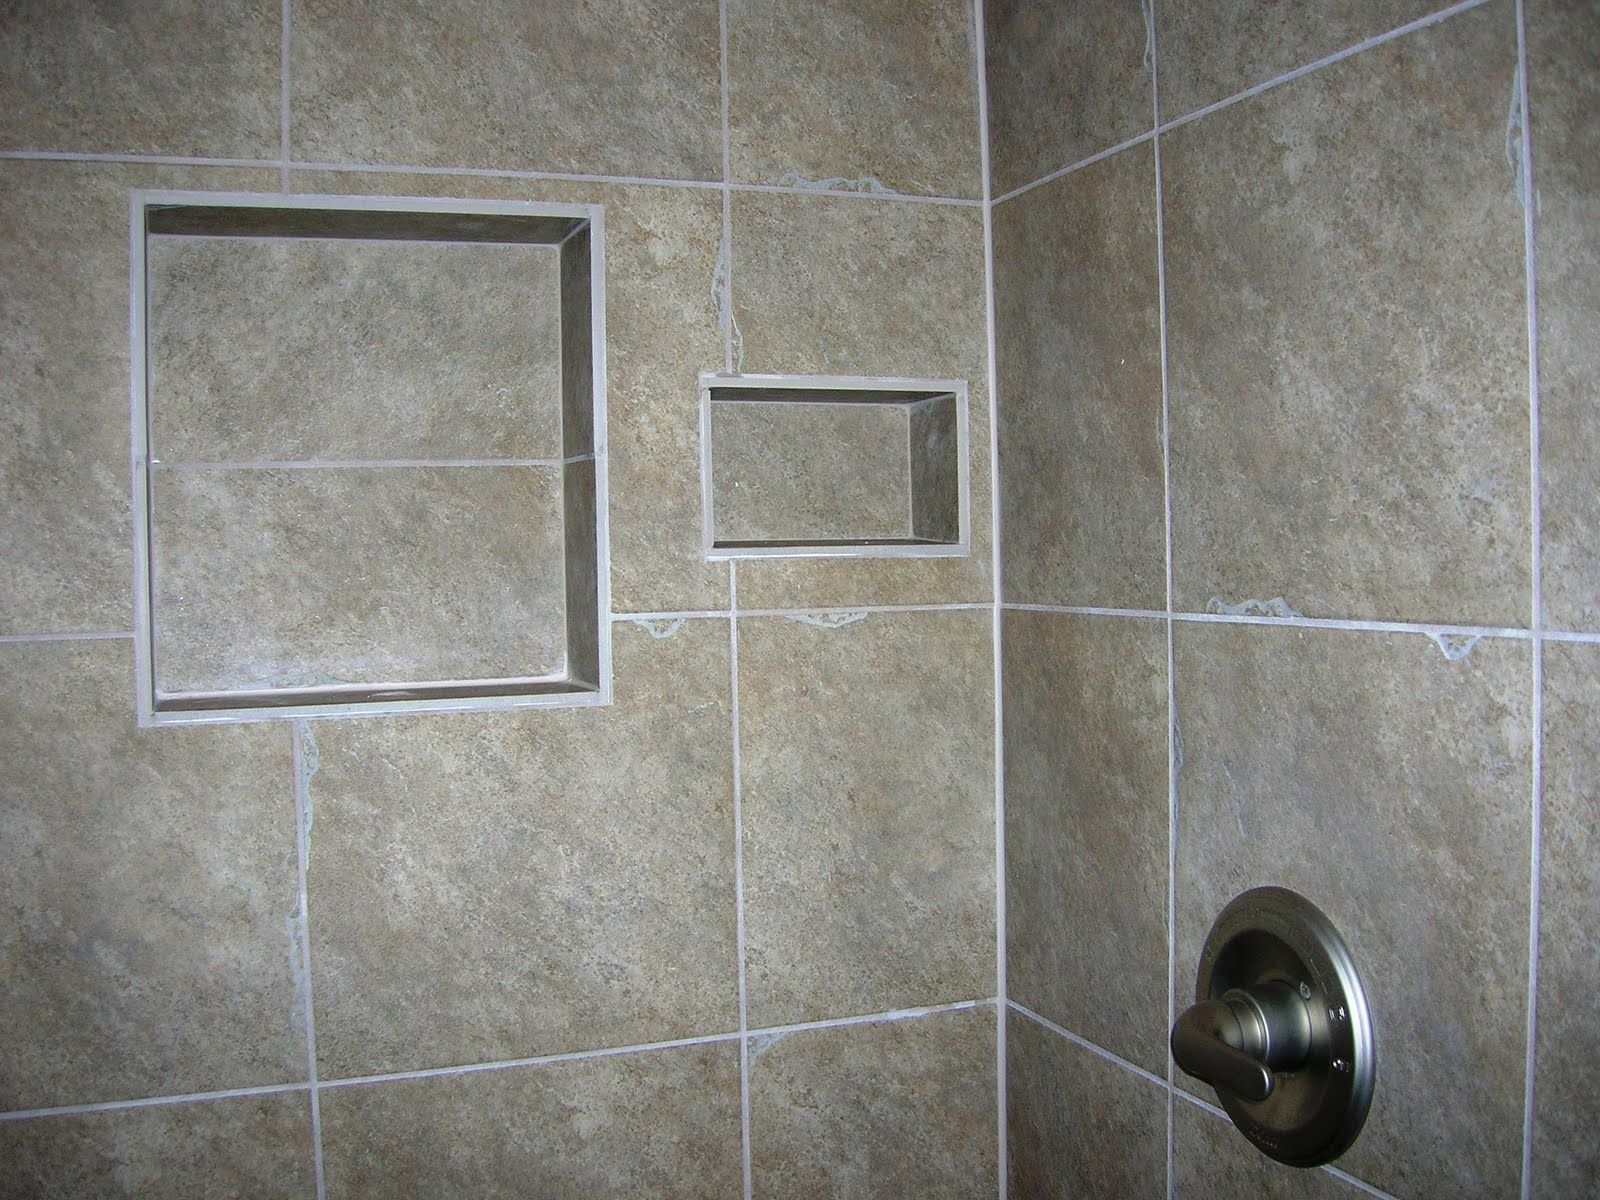 Porcelain Bathroom Tiles In Subway Tile